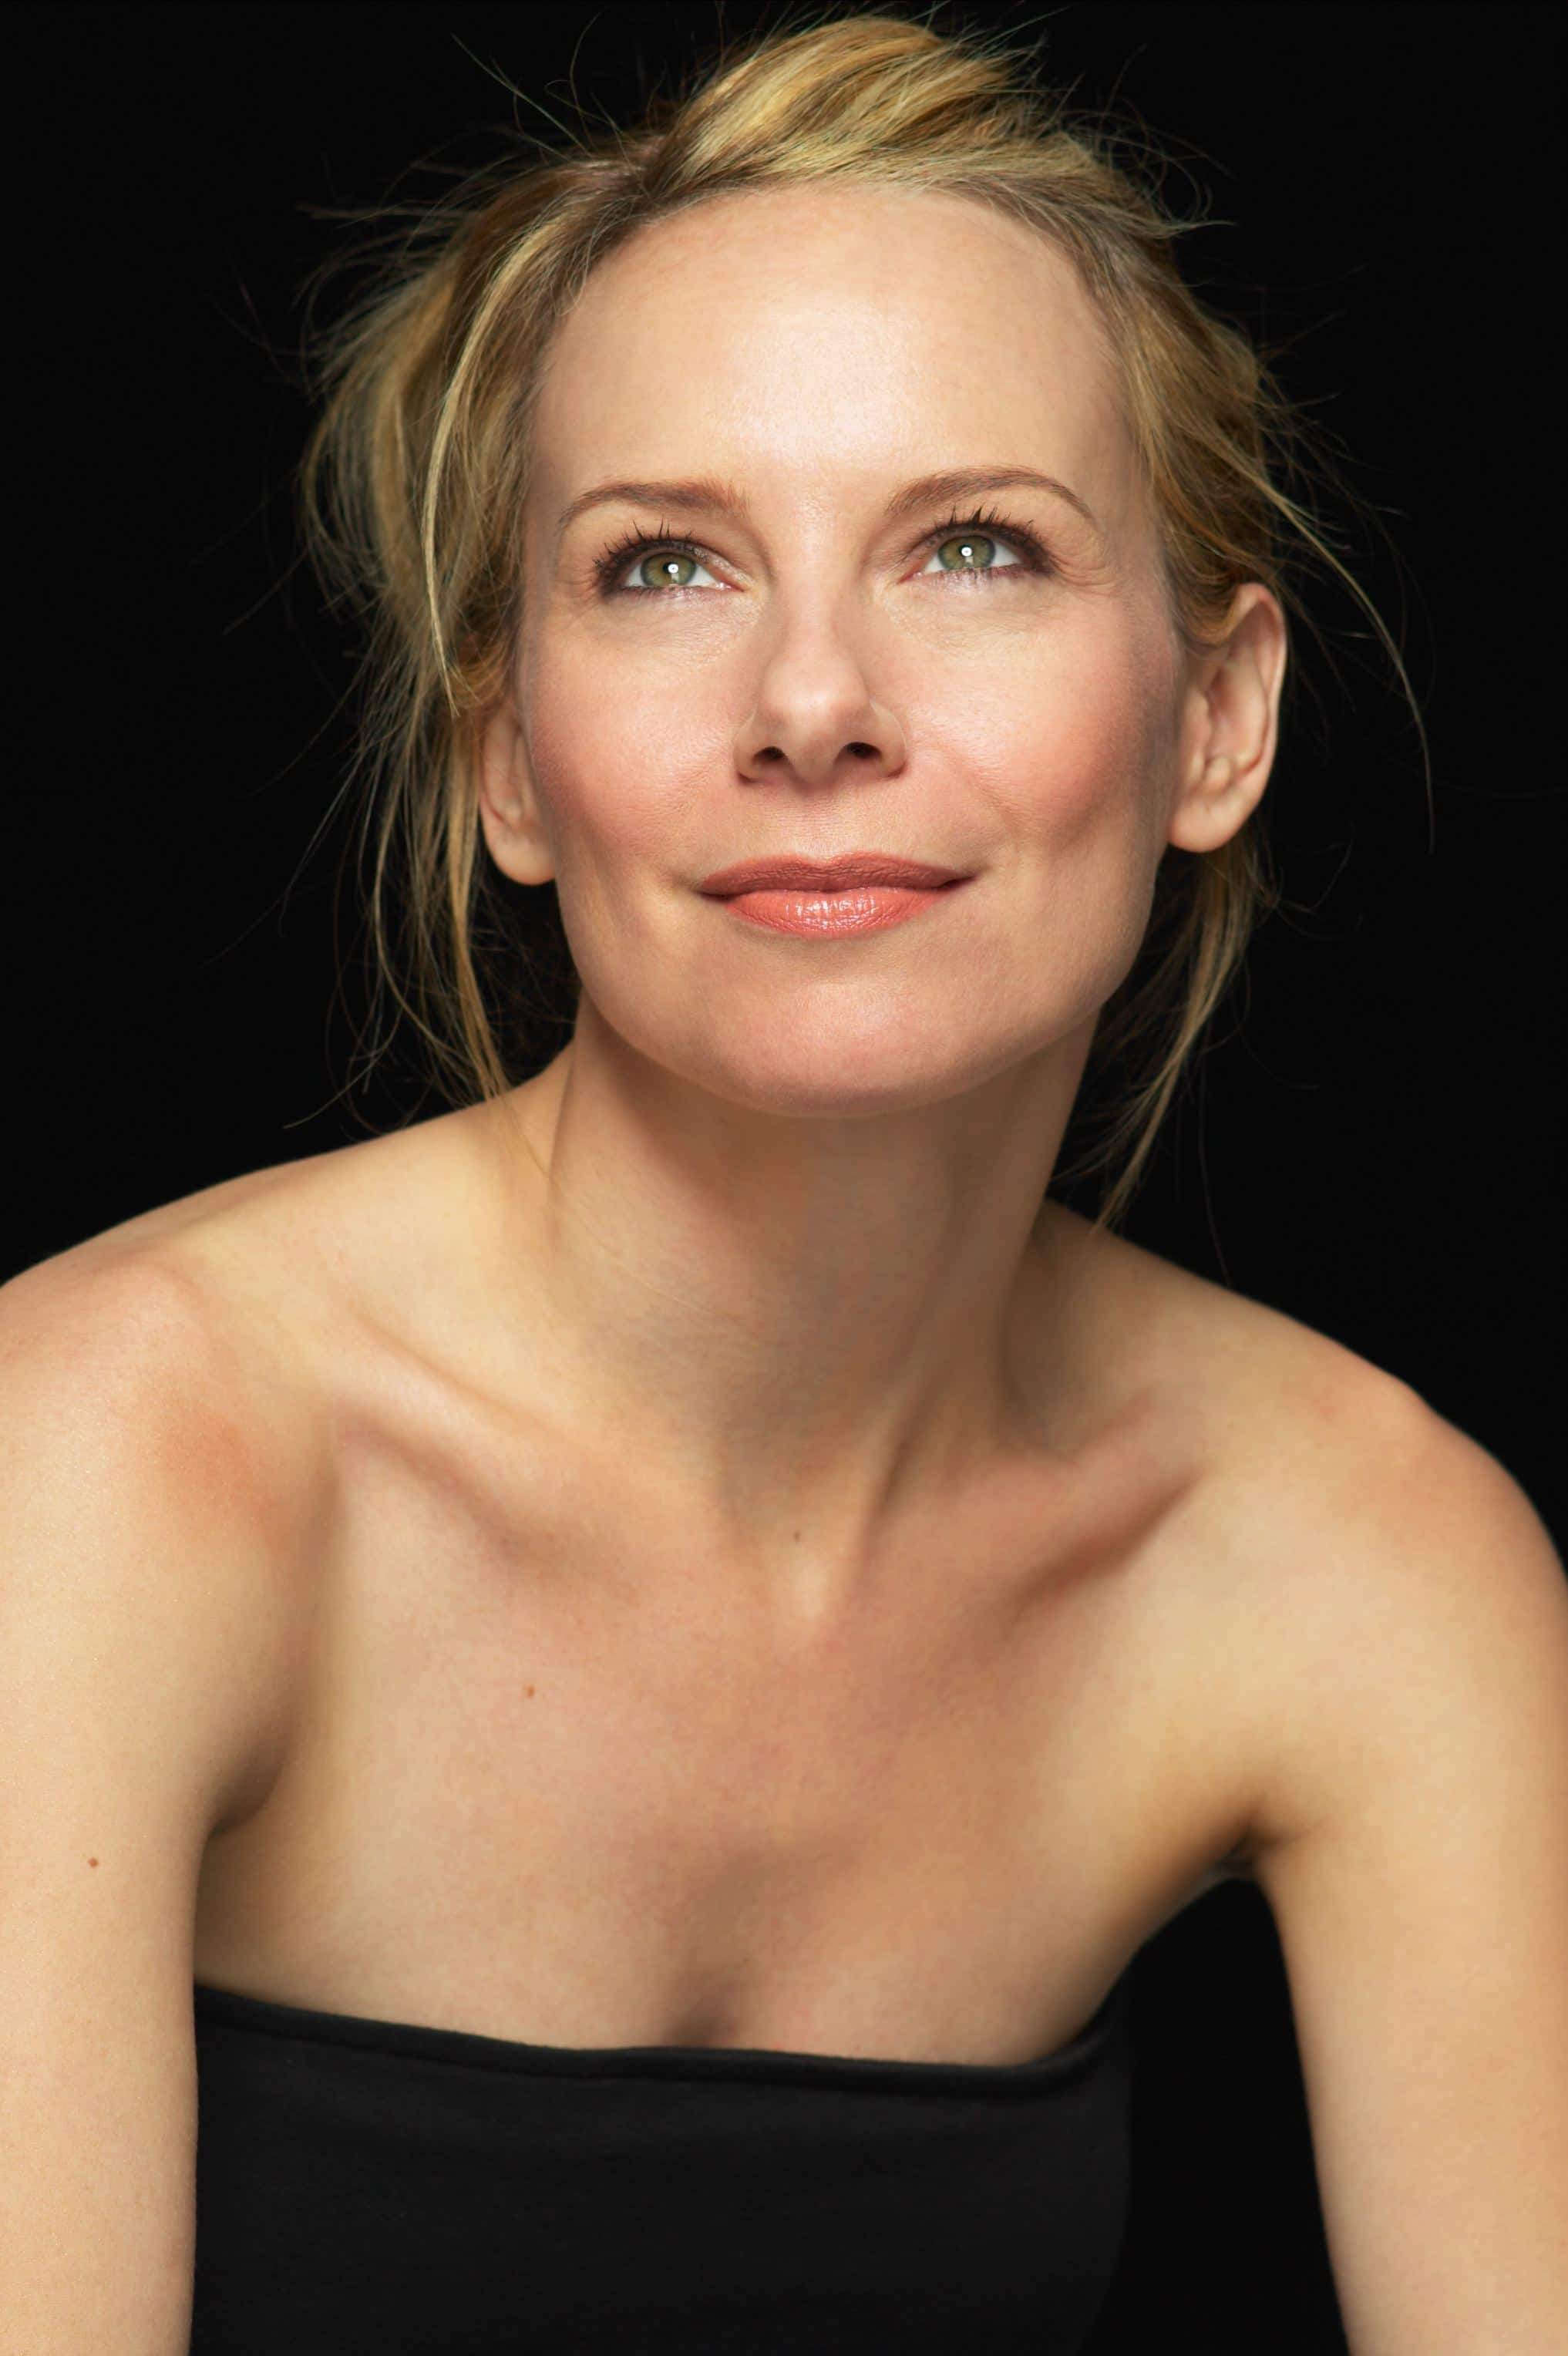 Amy Ryan bags lead role in Central Intelligence